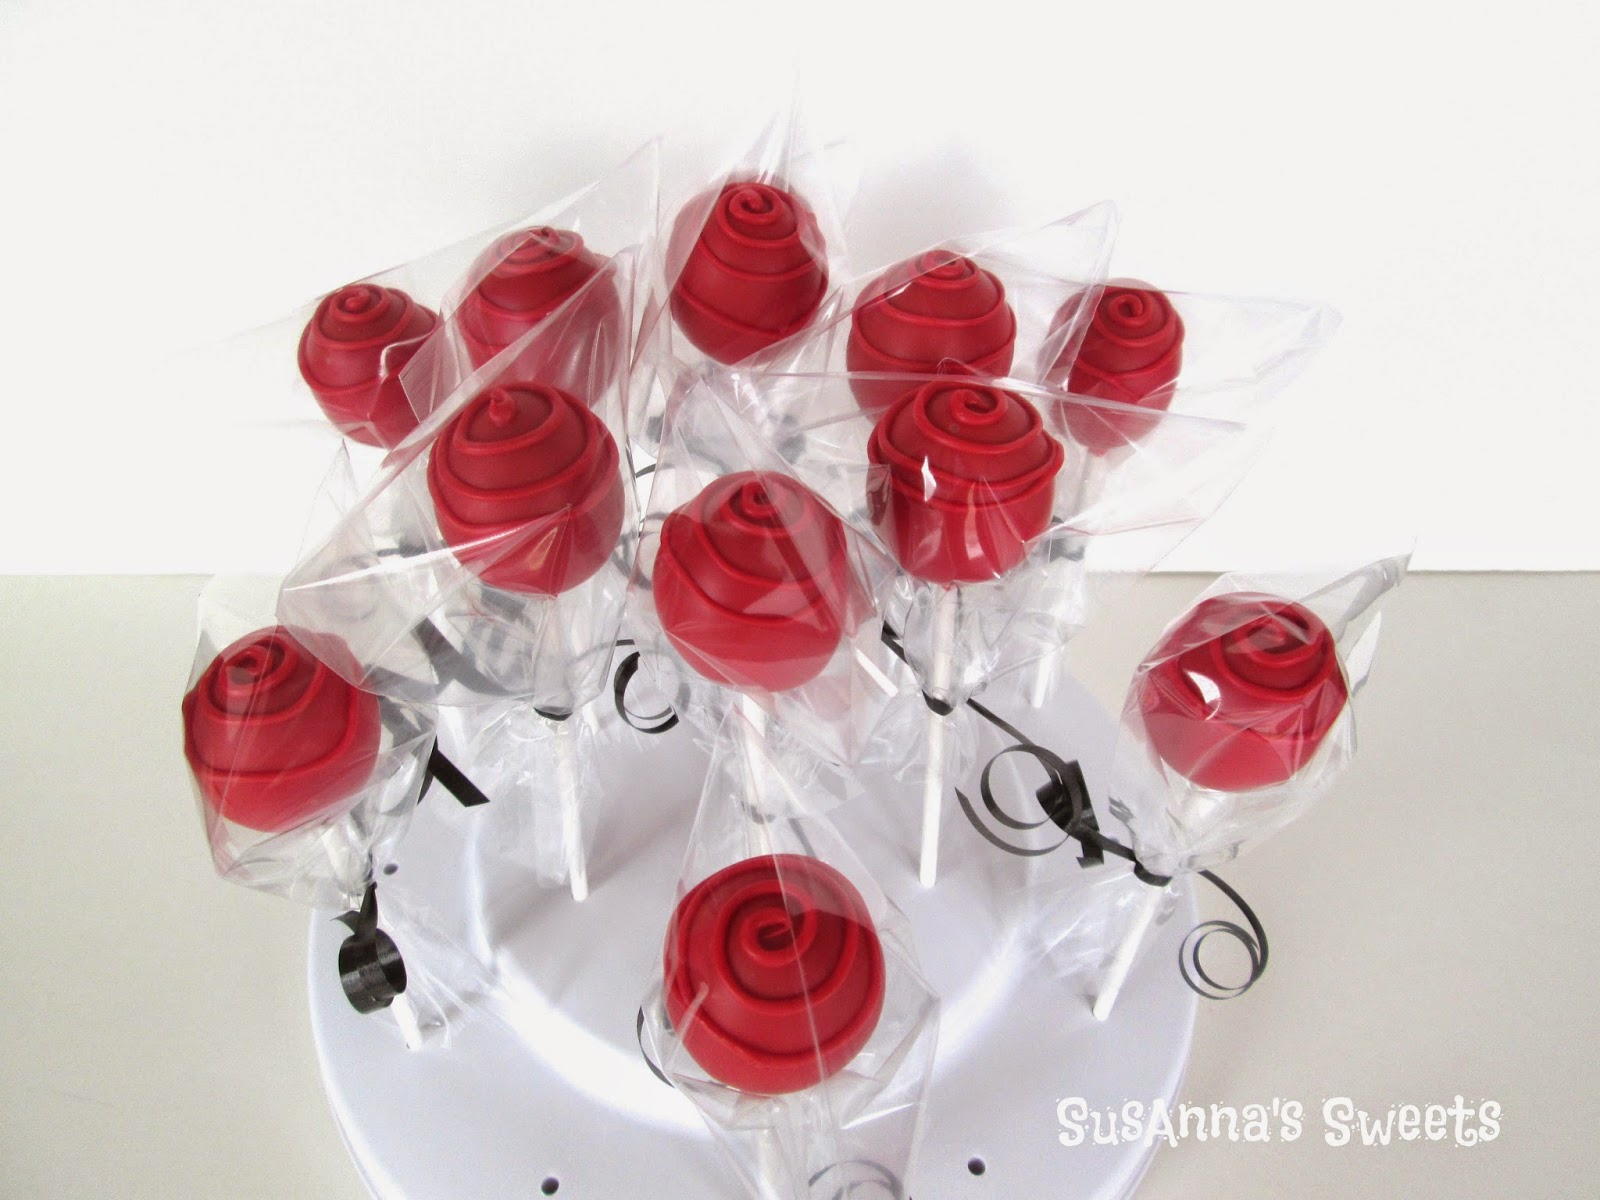 Susannas Sweets Mothers Day Flower Cake Pops